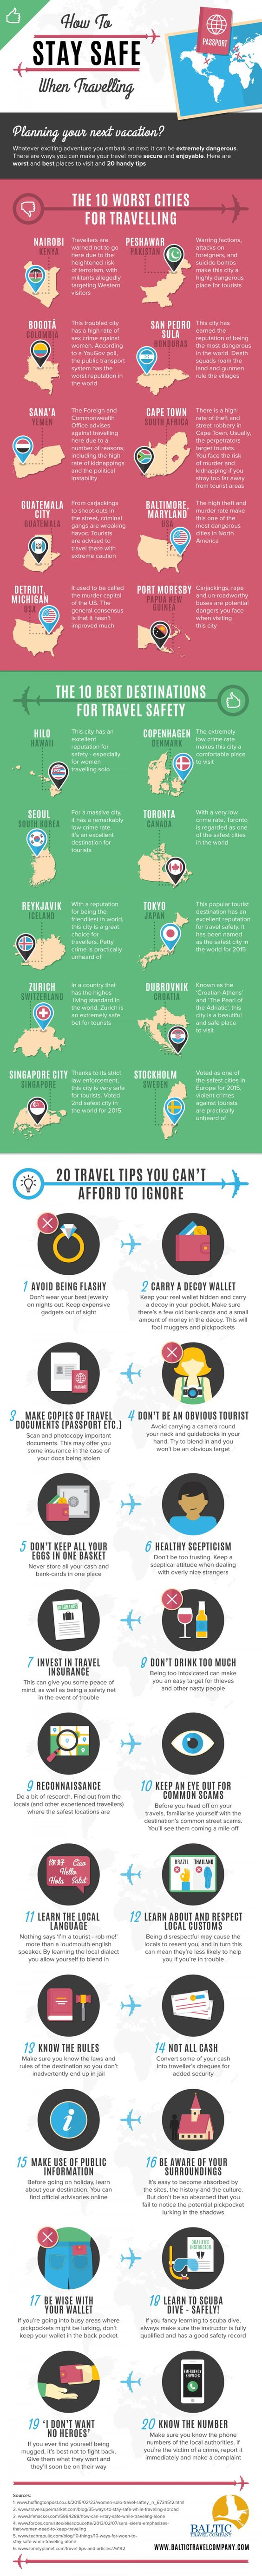 How to Stay Safe When Travelling #infographic #travel #HowTo